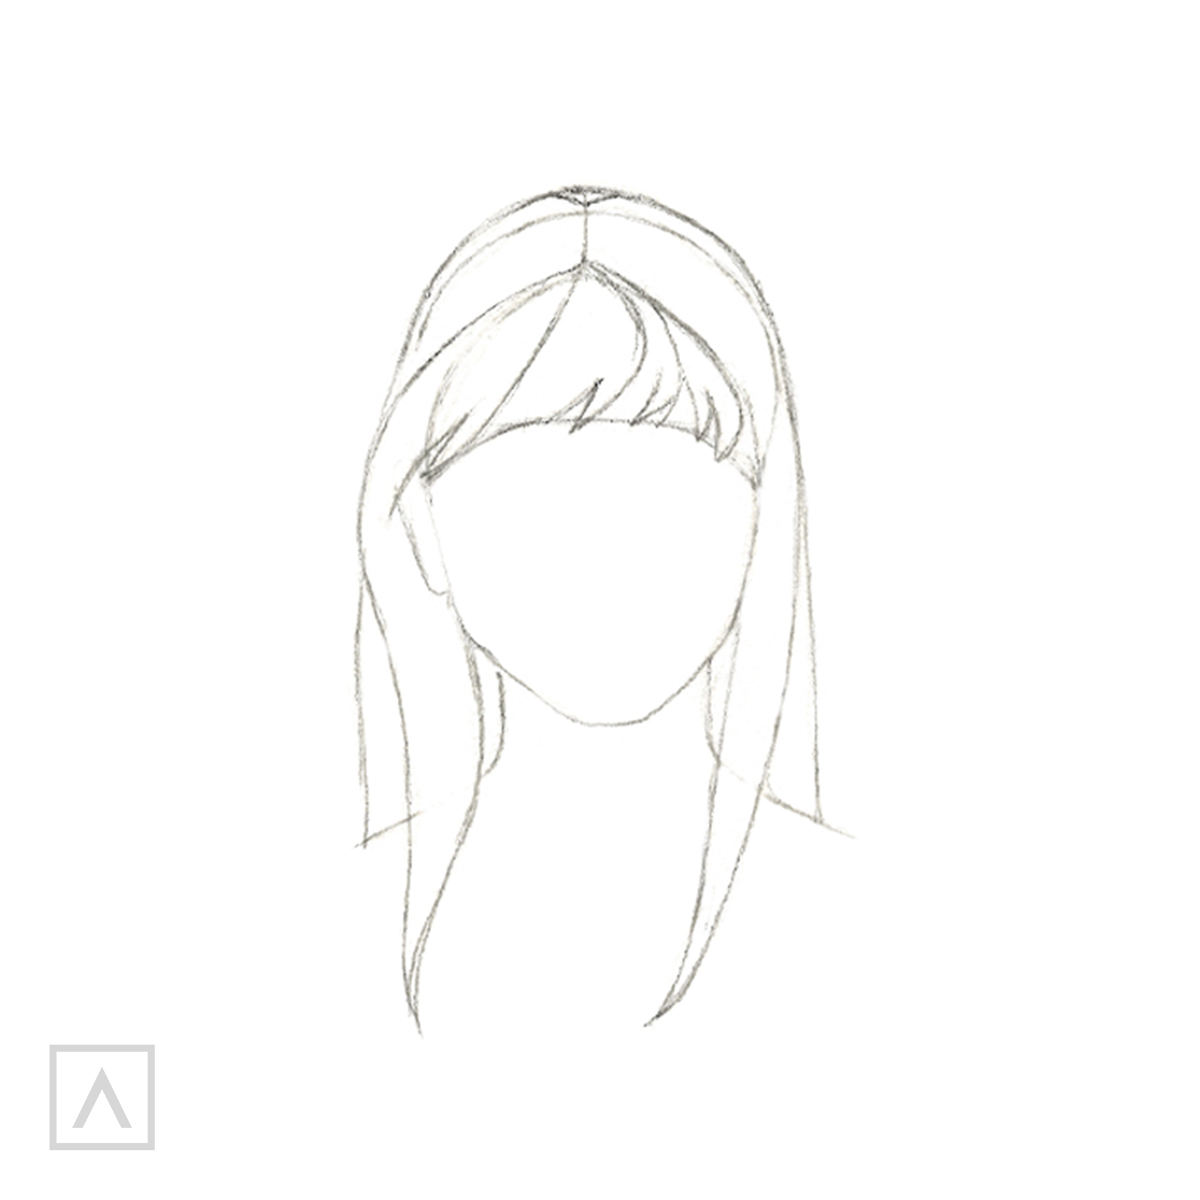 How to Draw Hair with Bangs - Step 4